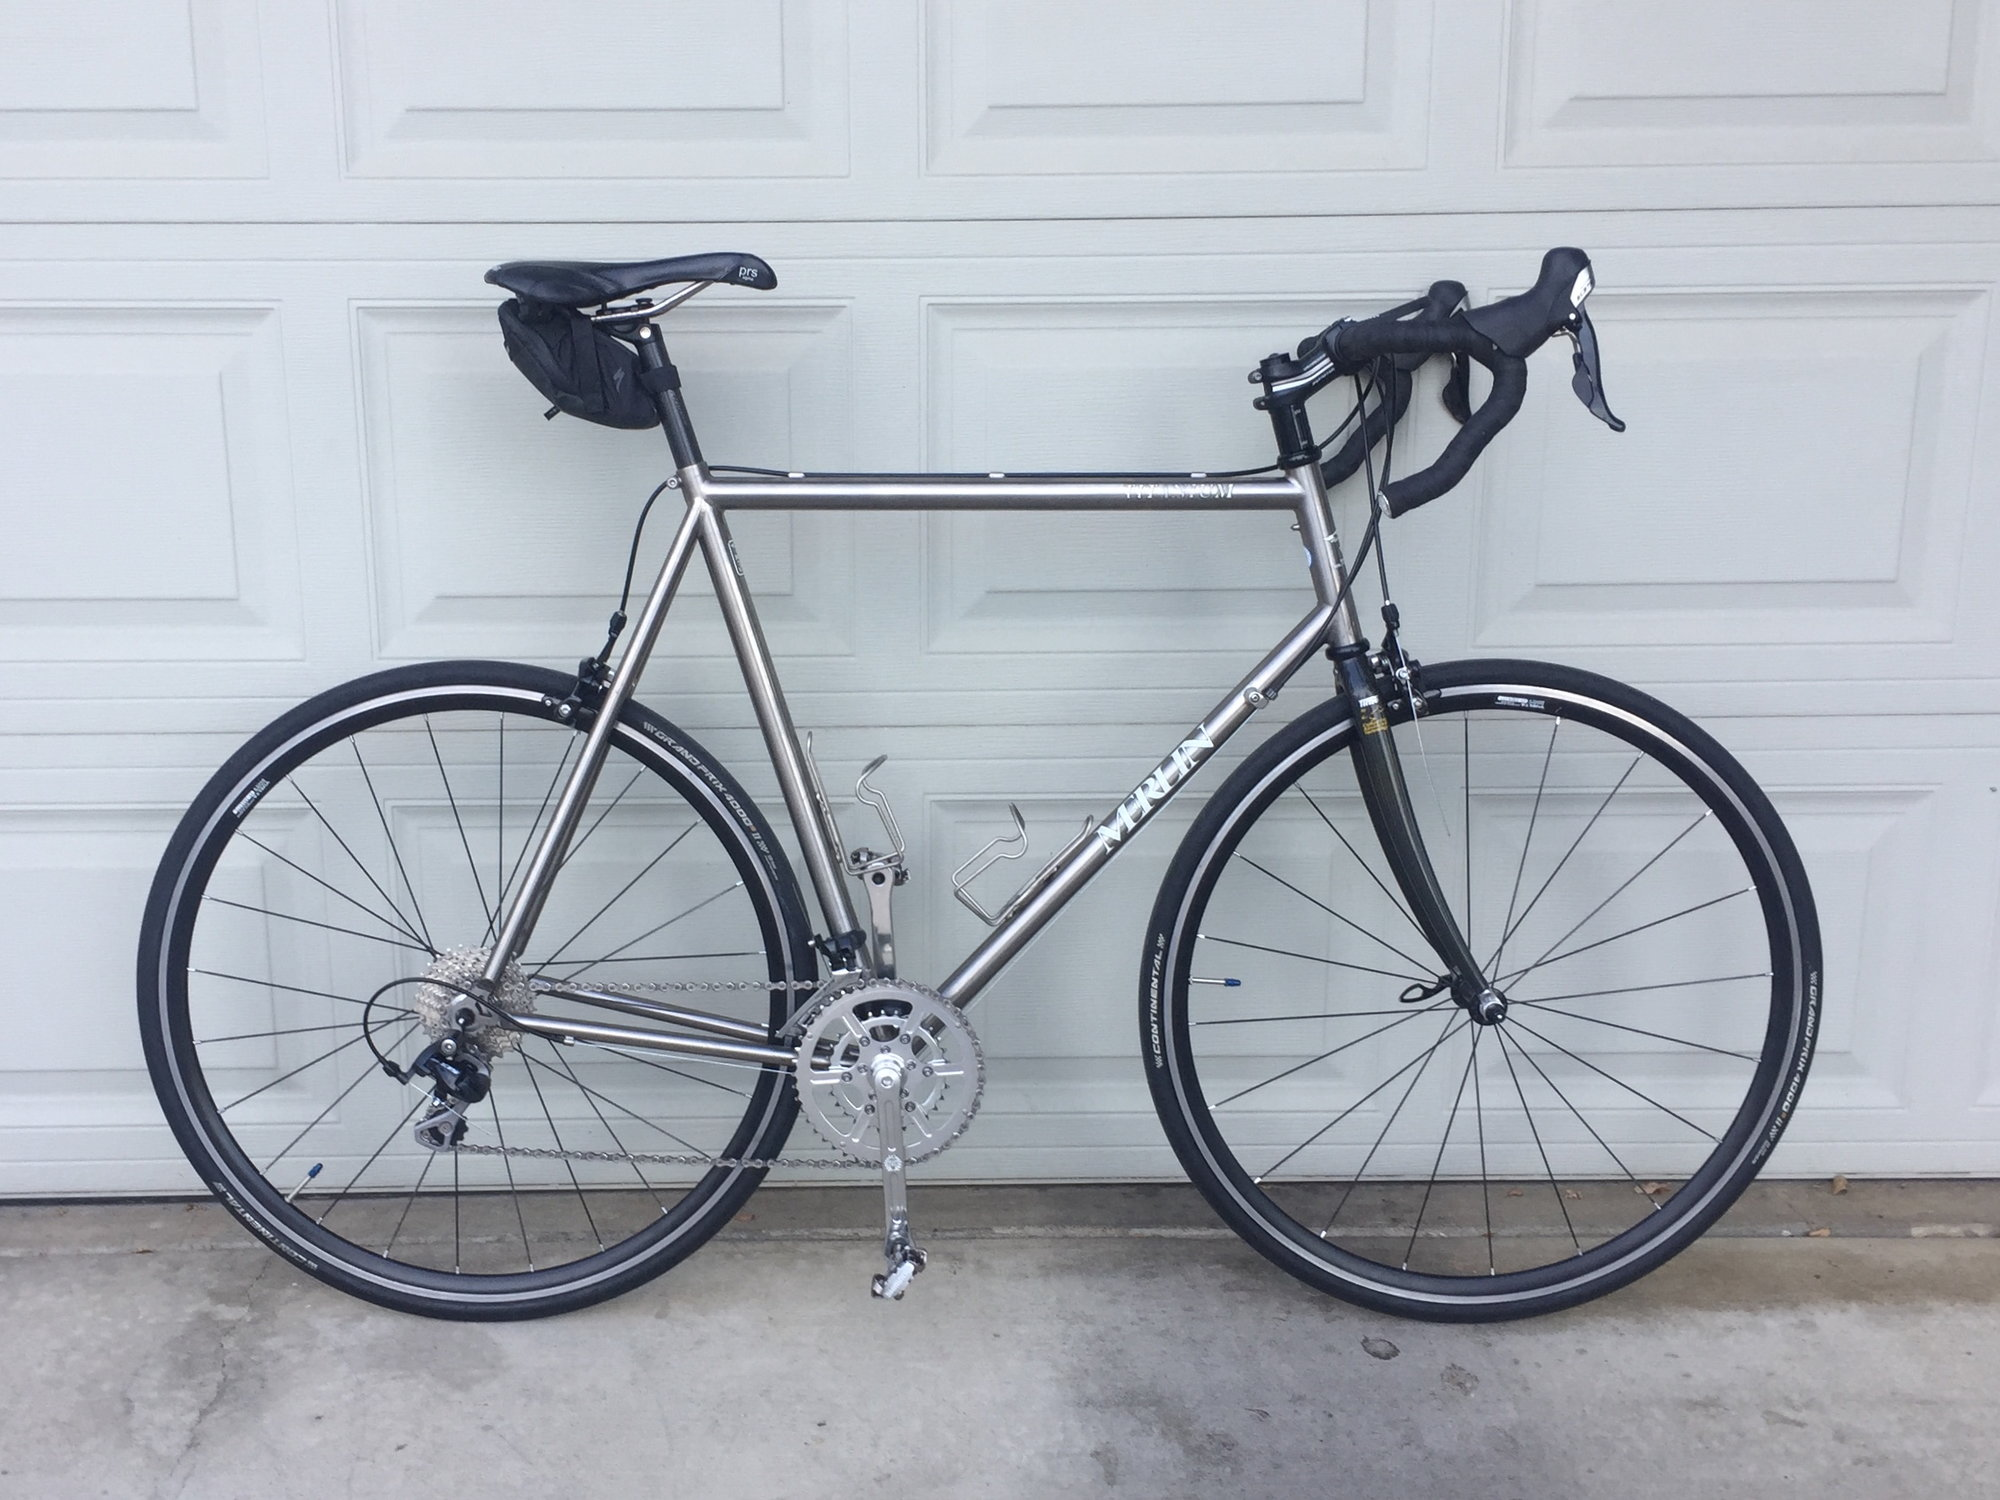 New To Me 1992 Merlin Titanium Bike Forums